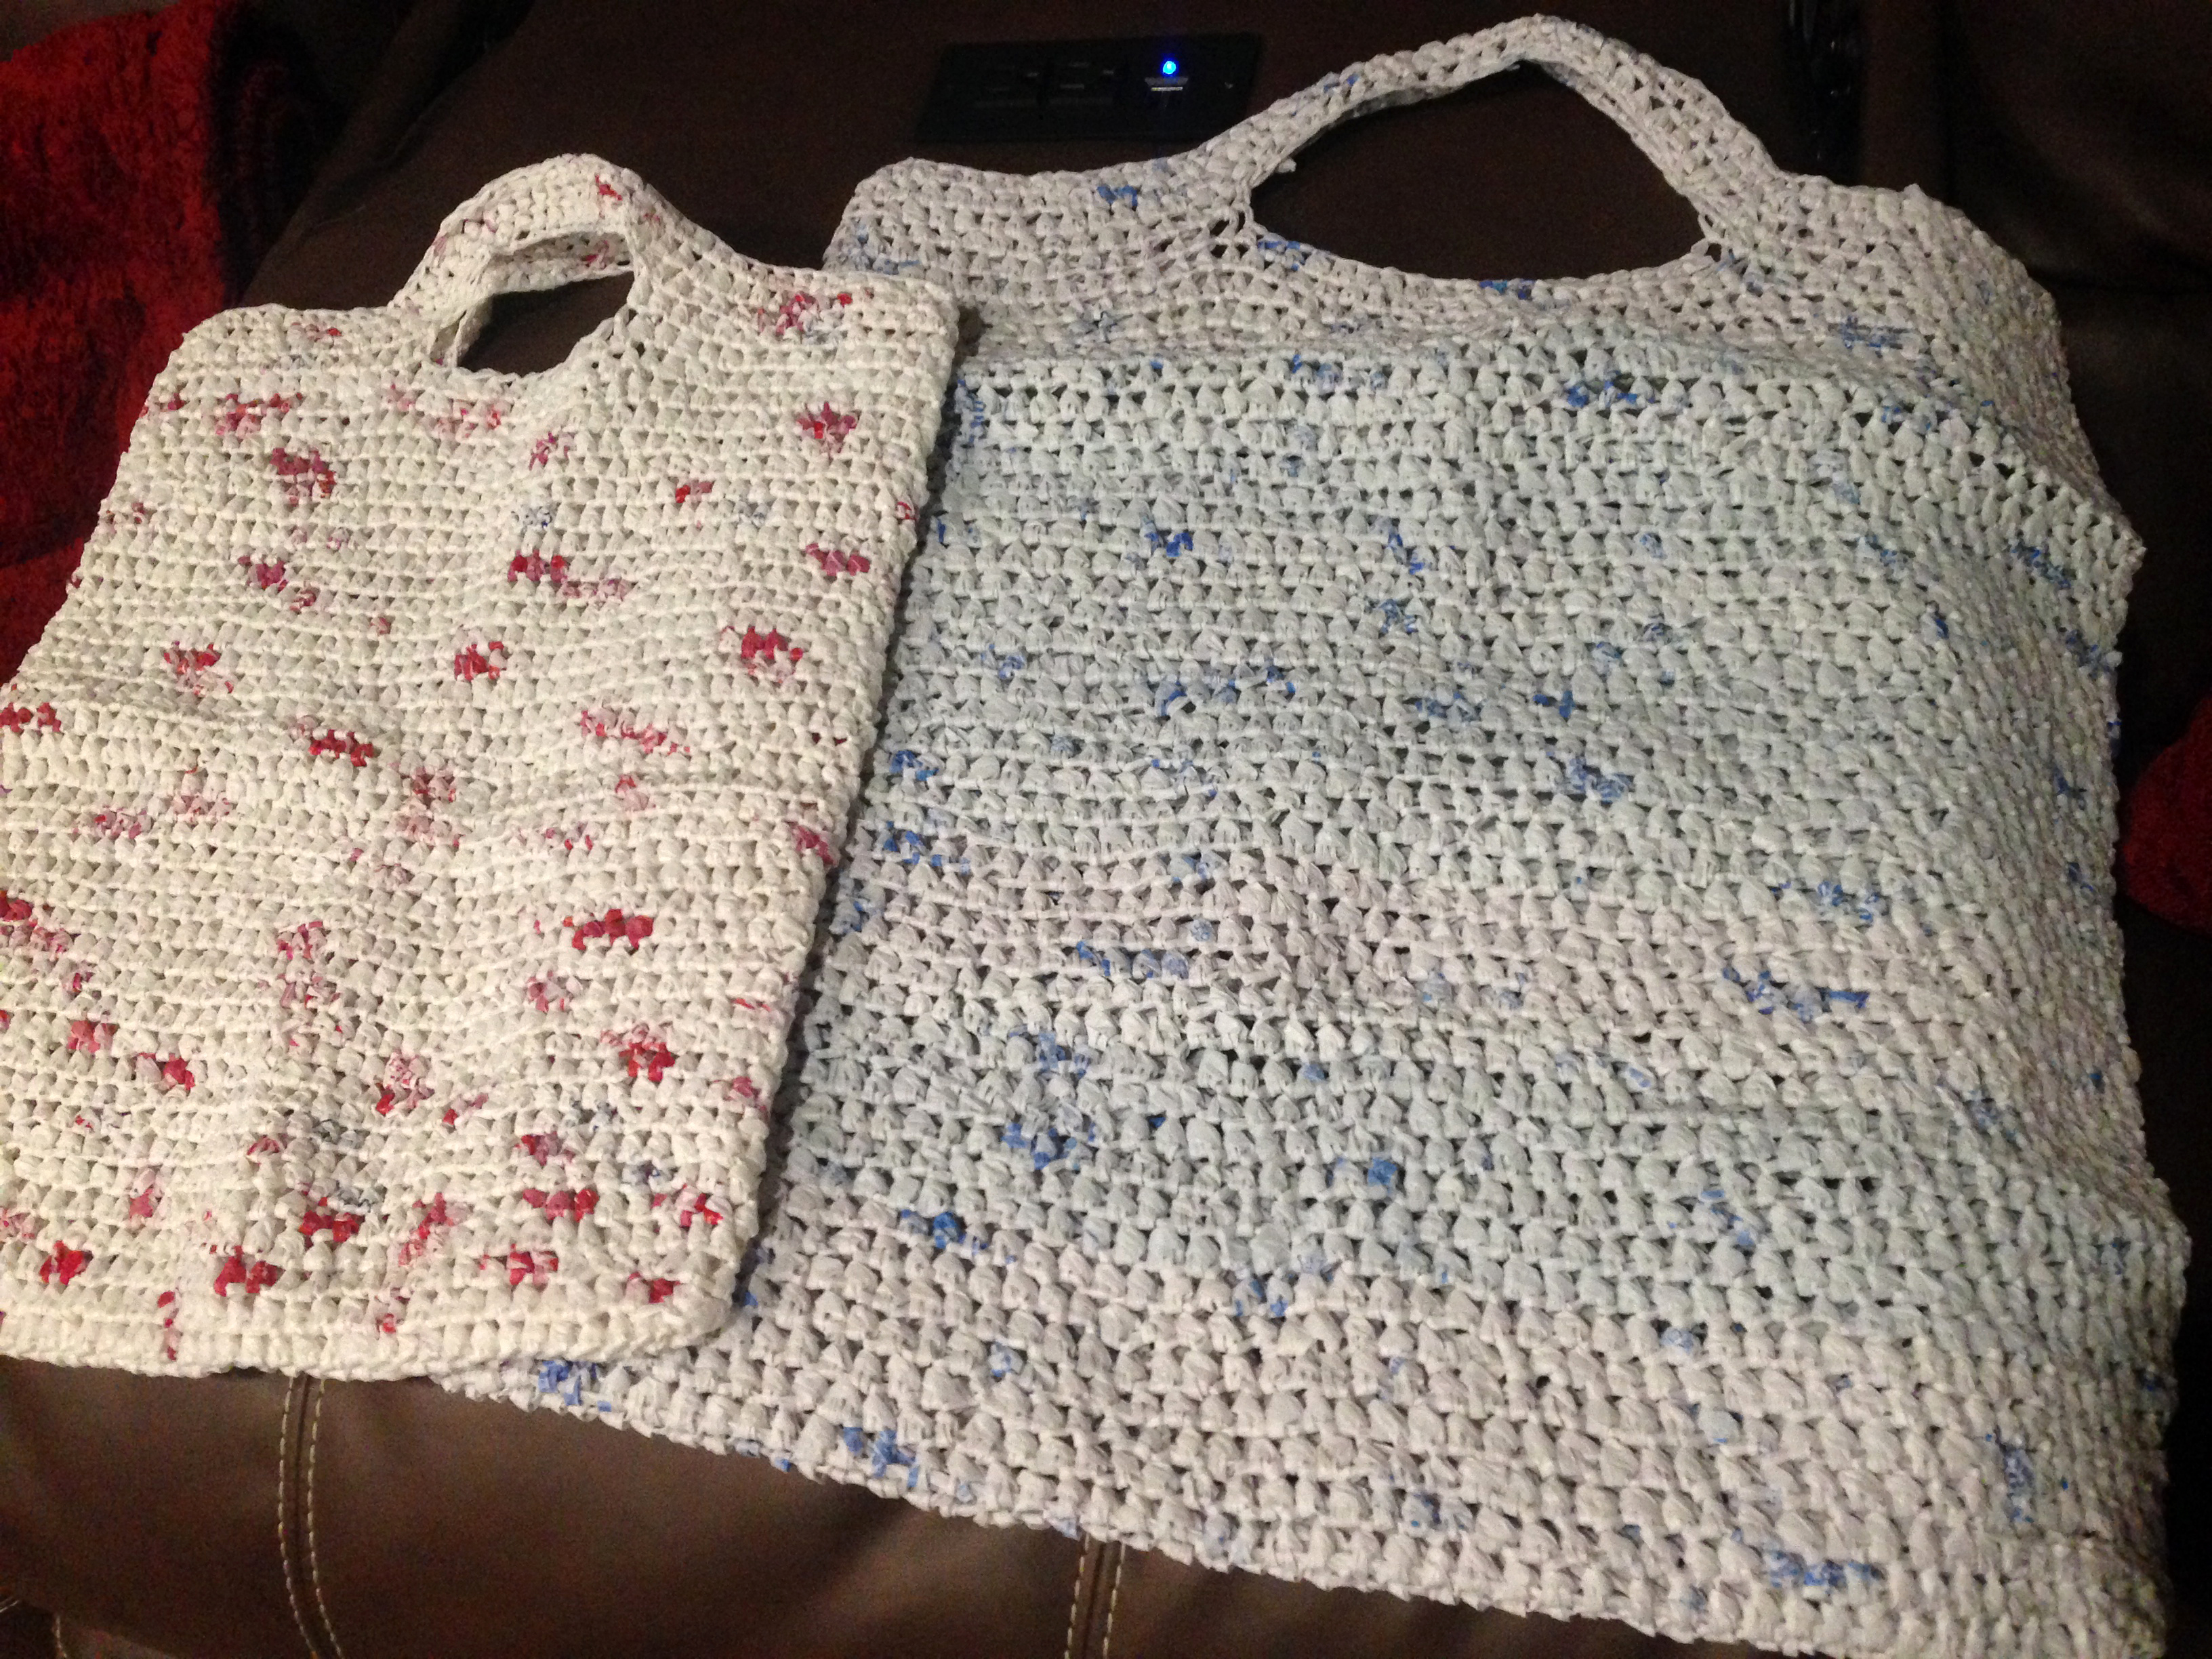 What will you do when you retire. This RVer makes bags from Target and Walmart plast bags to give to other RVers that she meets.